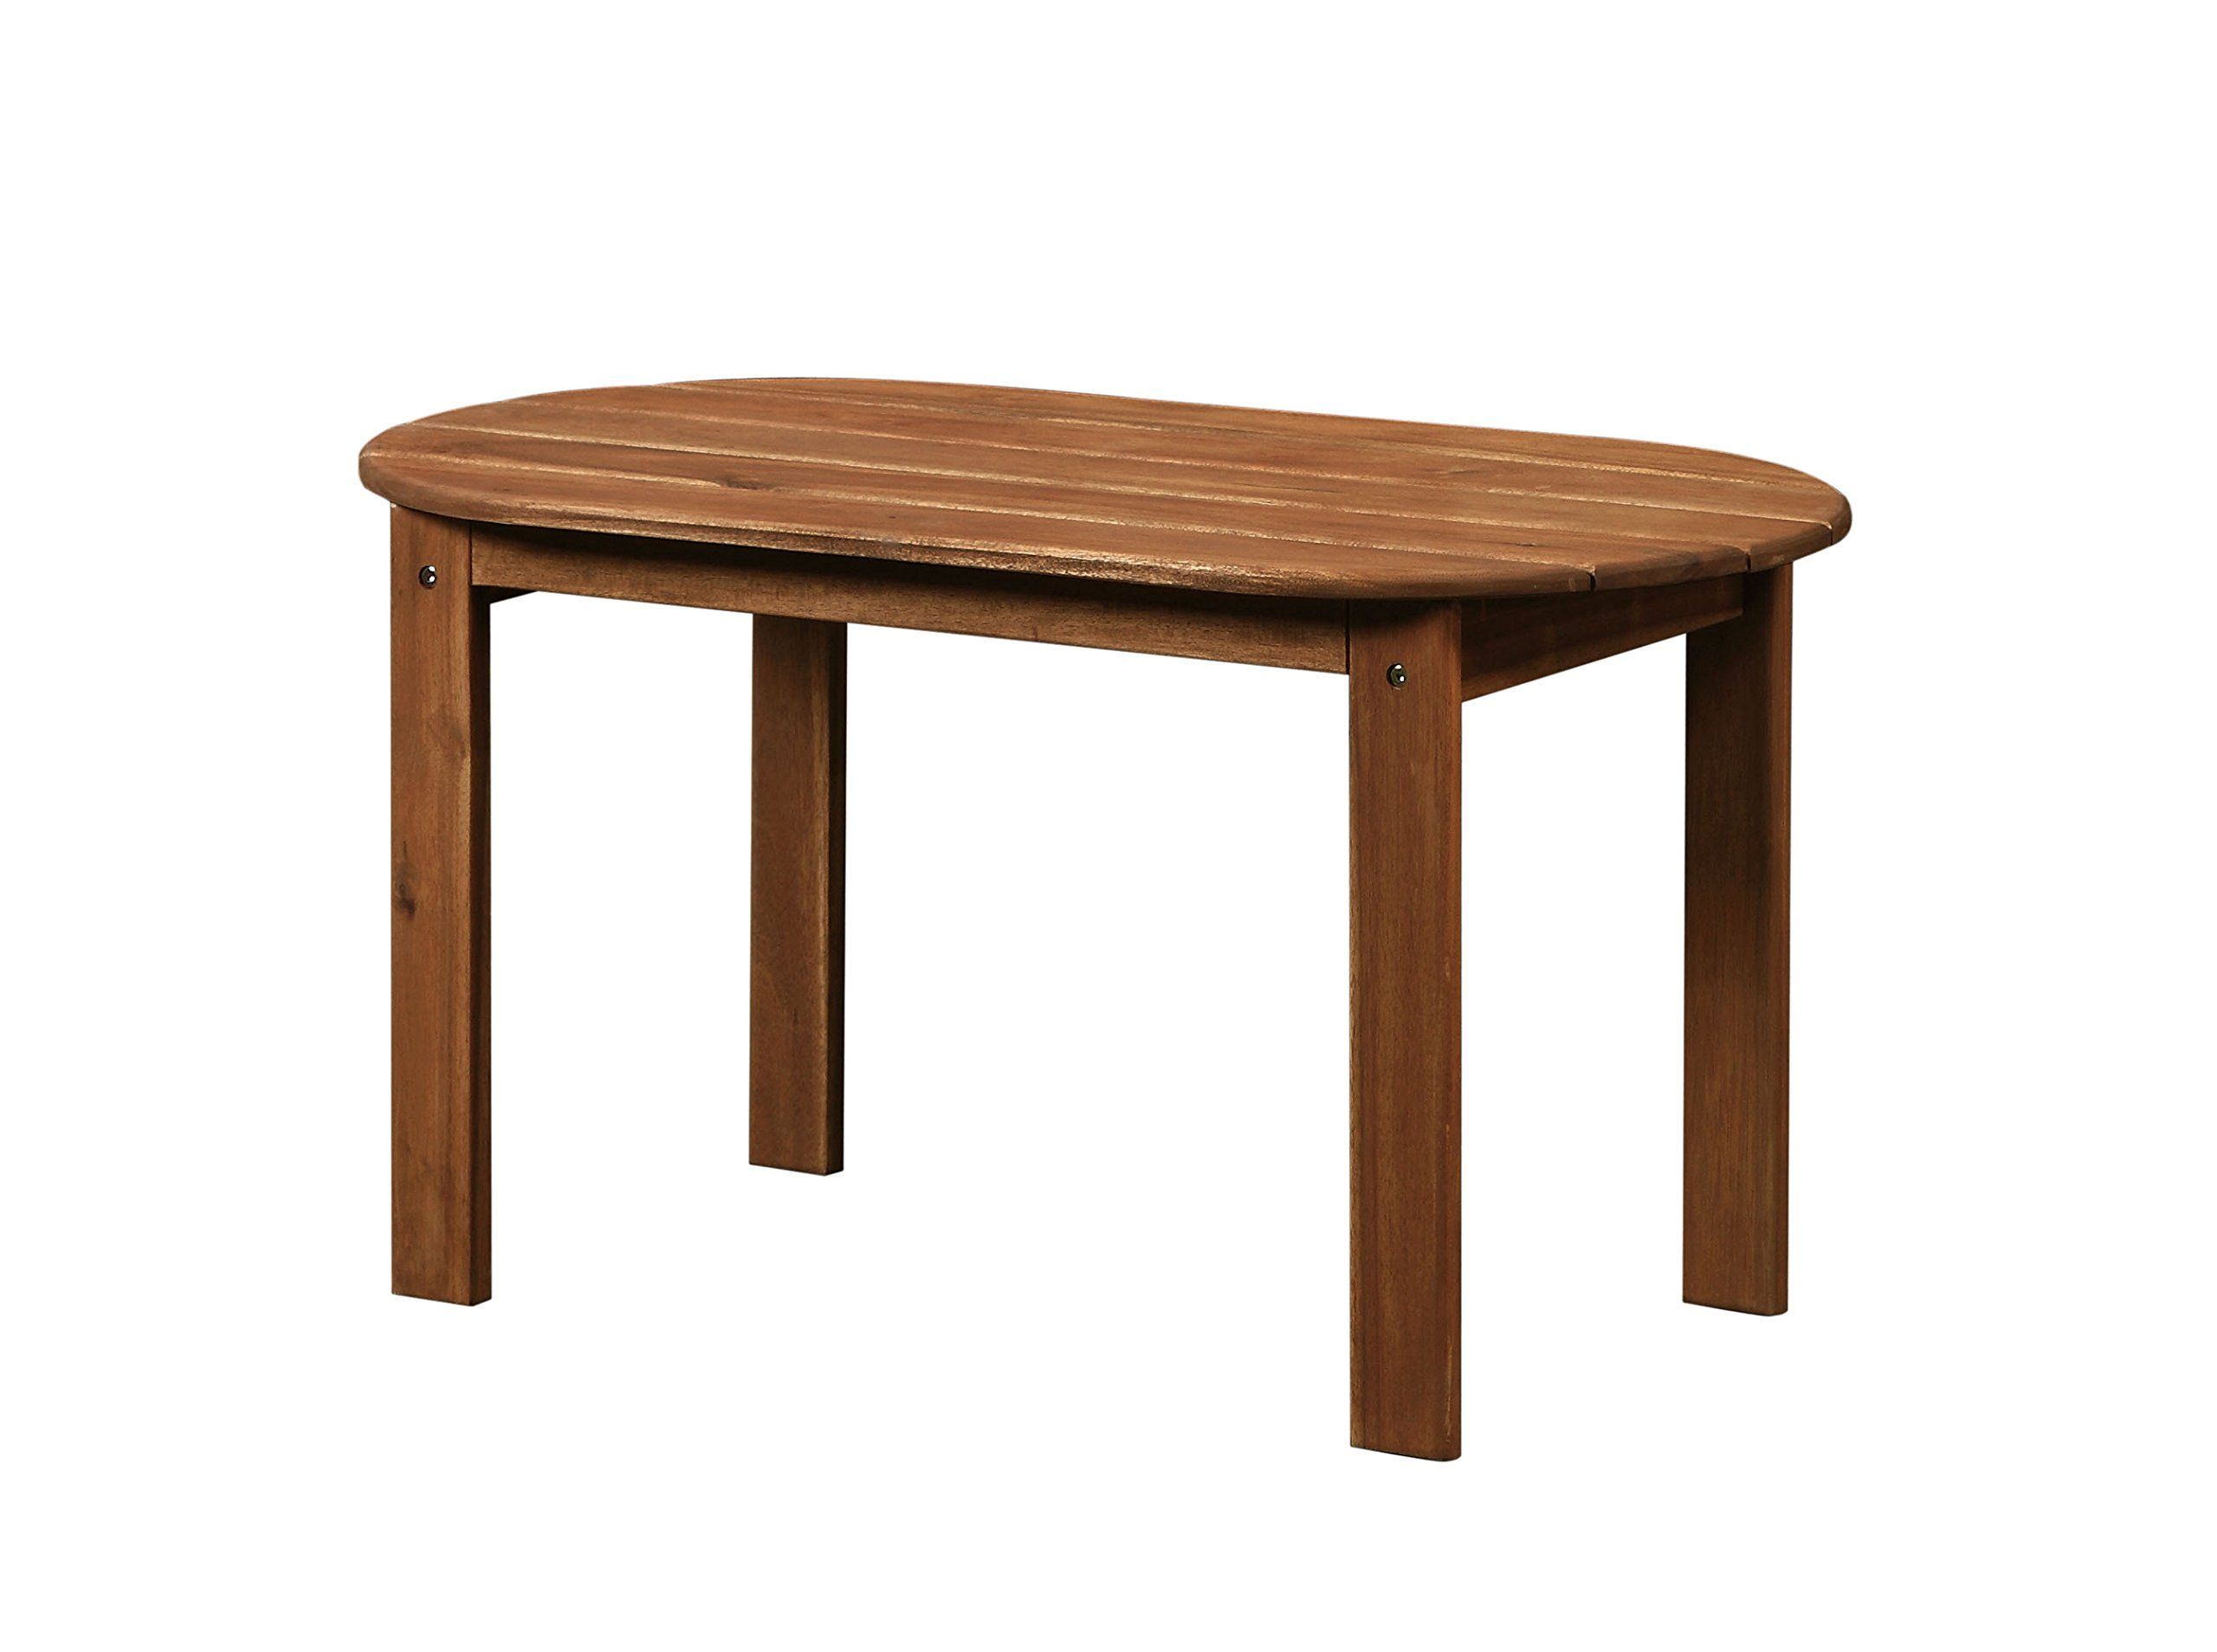 Linon  Coffee Table, Teak - Indoor/outdoor Sturdy and durable Perfect Complement to your Adirondack or outdoor Furniture - living-room-furniture, living-room, coffee-tables - 71tG4bpPhfL -